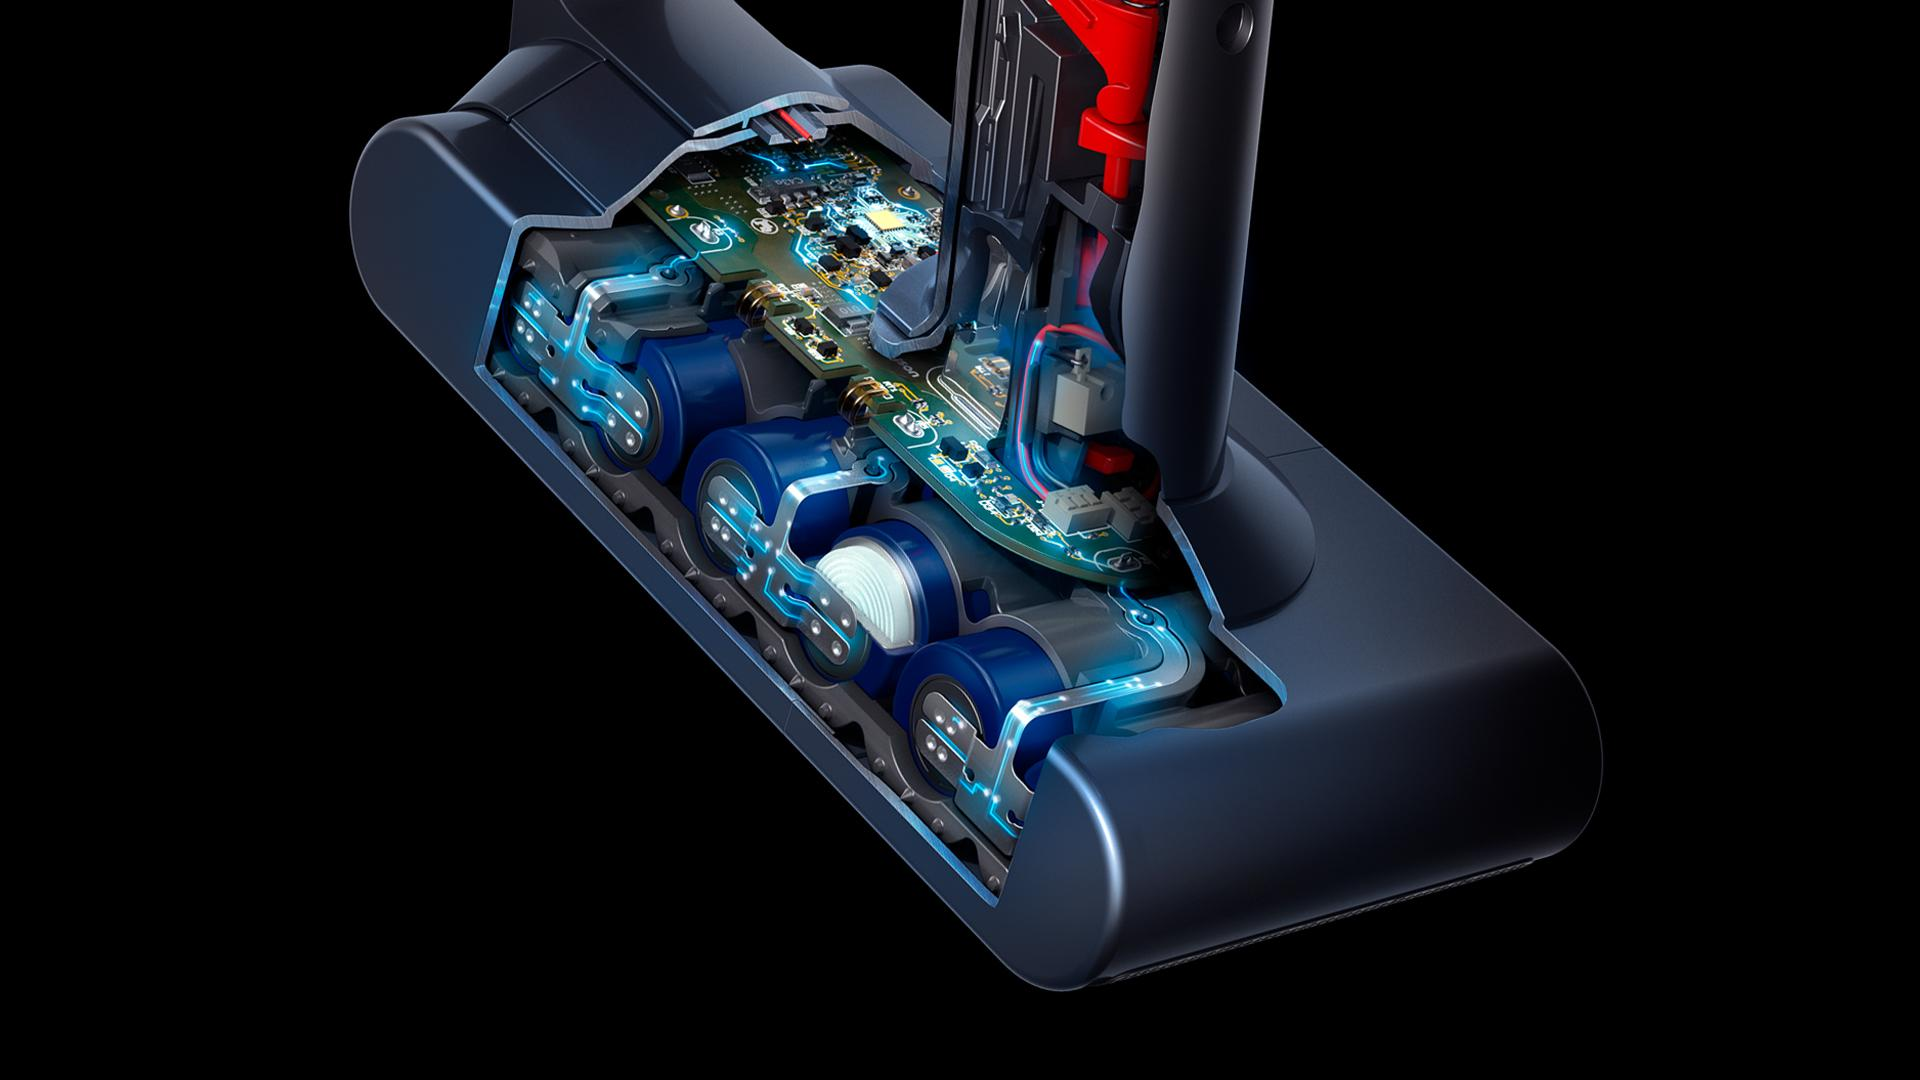 Cutaway diagram of Dyson cordless stick vacuum battery